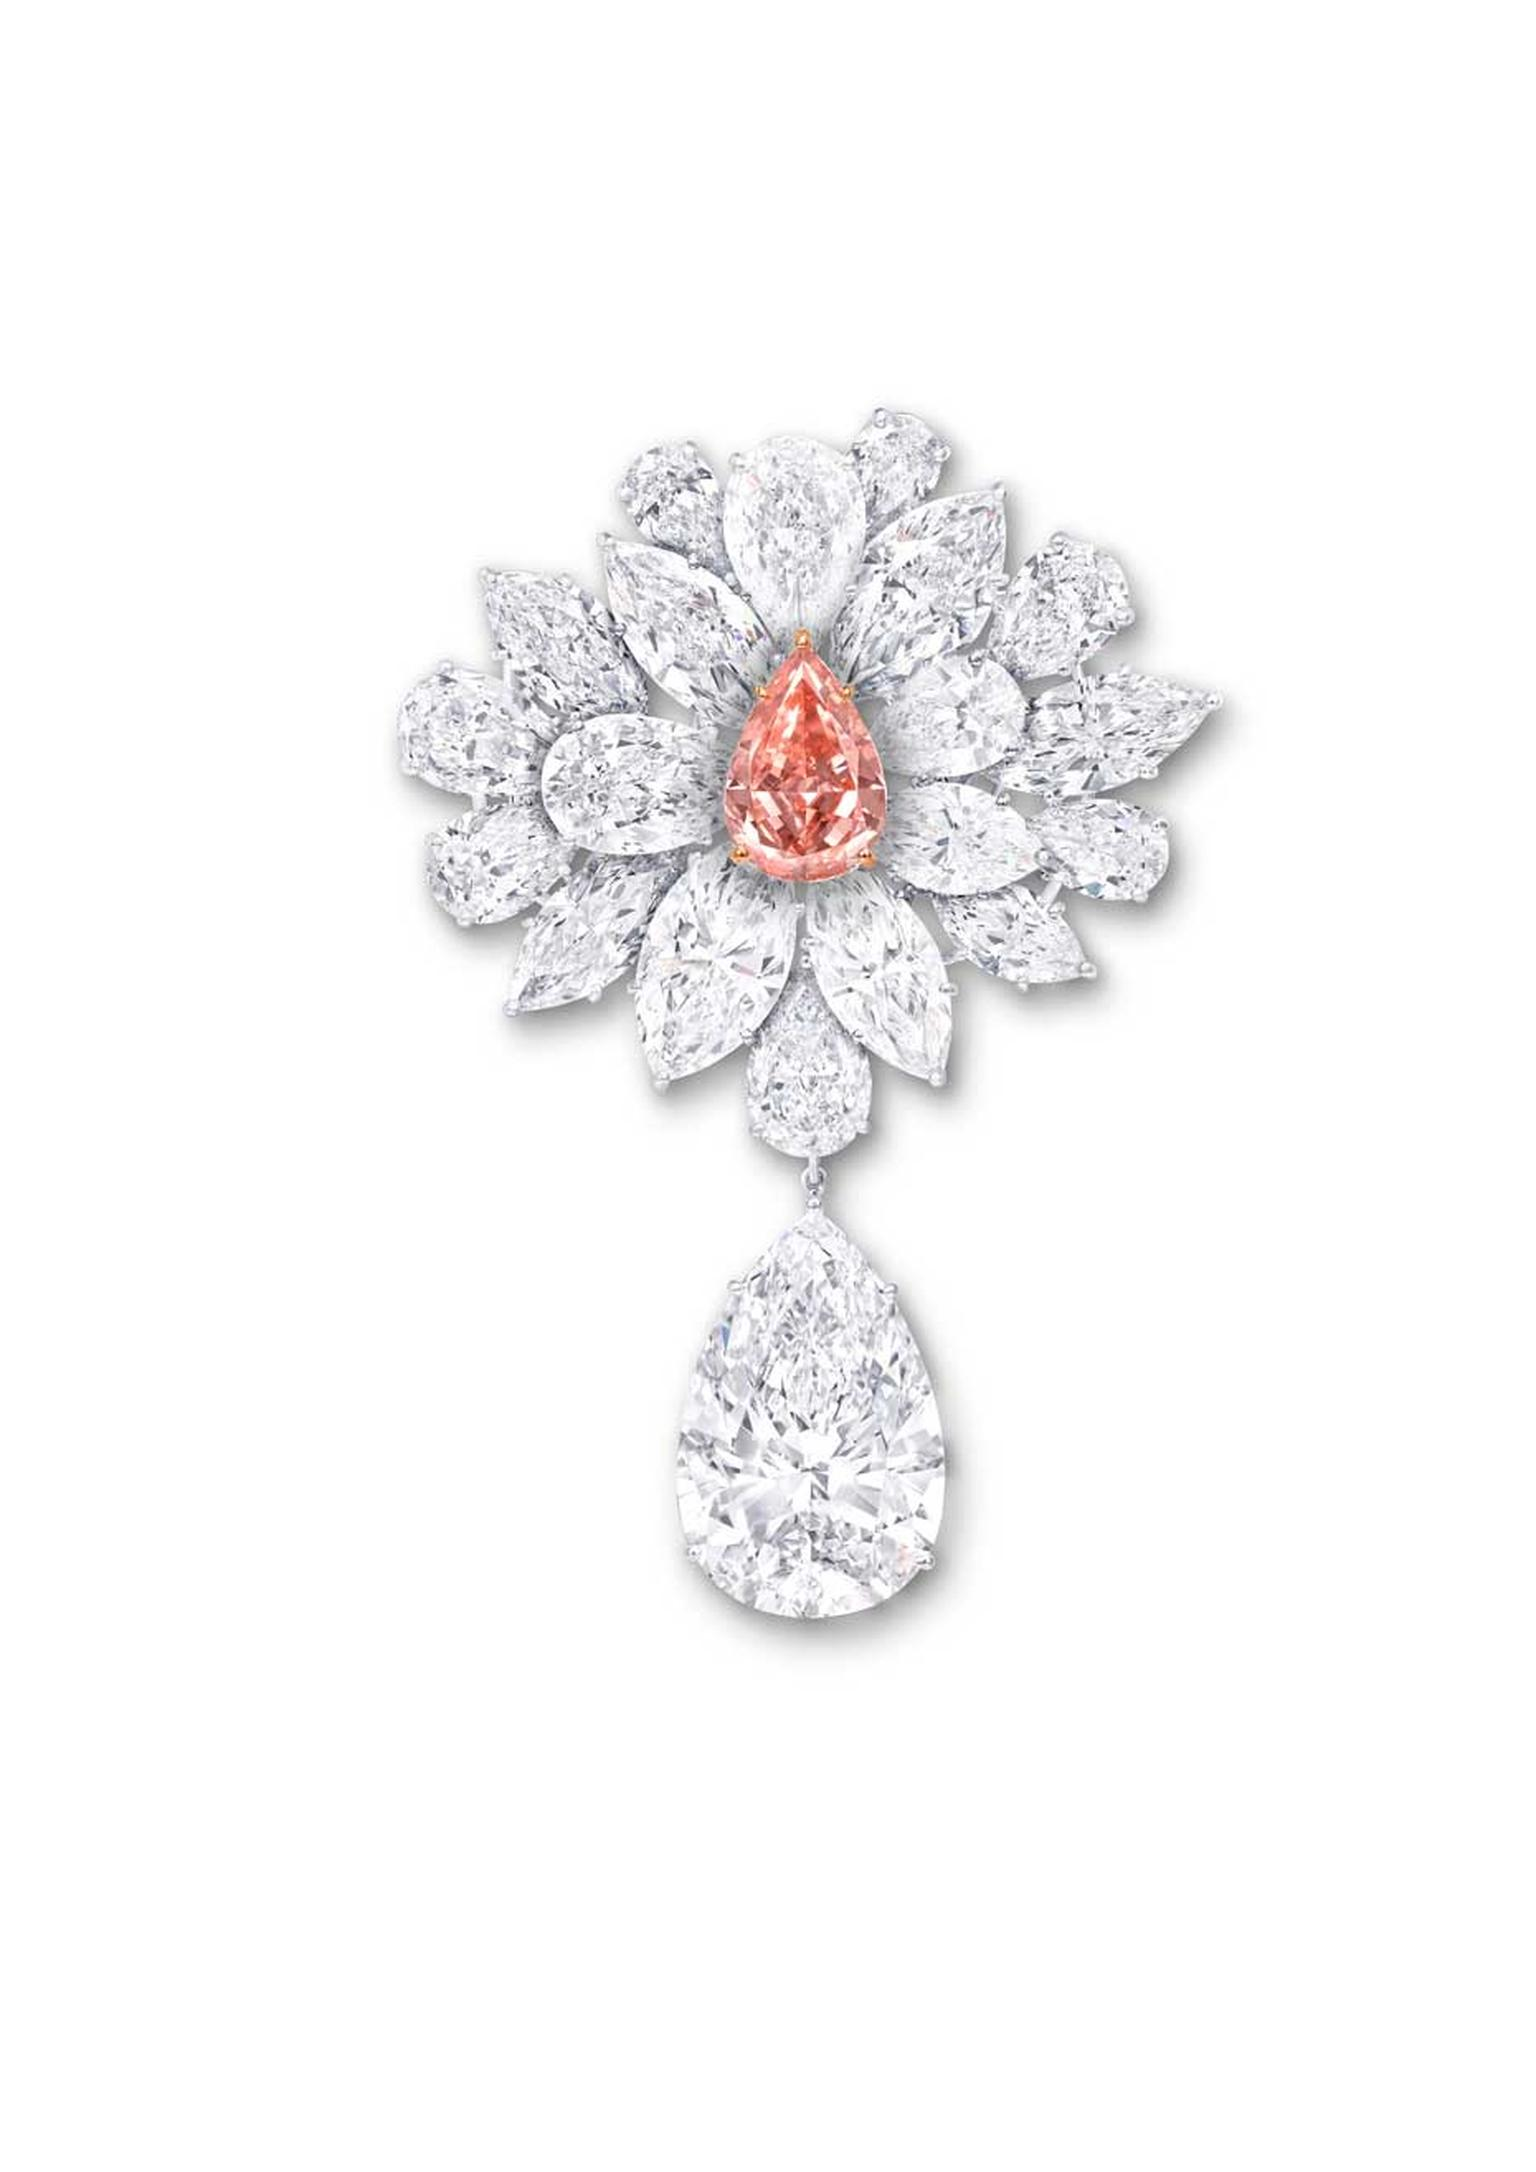 Graff's Diamond Flower Brooch features an 8.97ct pear-shaped Fancy Vivid Pink Orange diamond, surrounded by a spray of white diamond petals and leaves. The brooch is further enhanced with a 38.13ct D Flawless pear-shaped white diamond suspended from a lea